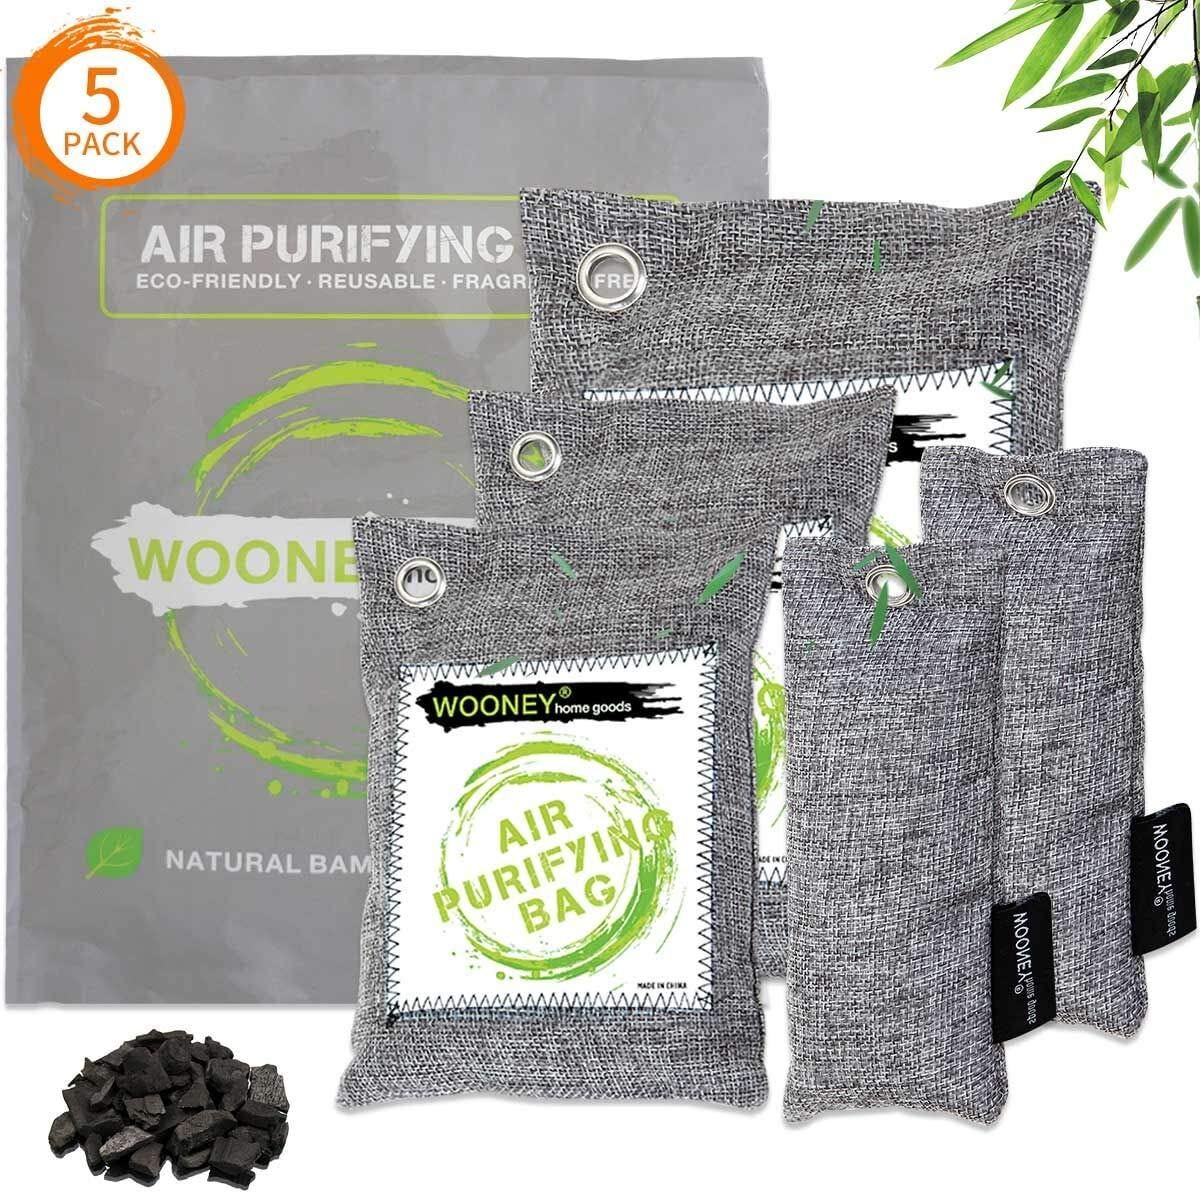 WOONEY Bamboo Charcoal Air Purifying Bag 5-Pack, Powerful Activated Charcoal Bags Odor Absorber to Freshen Air Kid and Pet-Friendly for Home Shoe Room